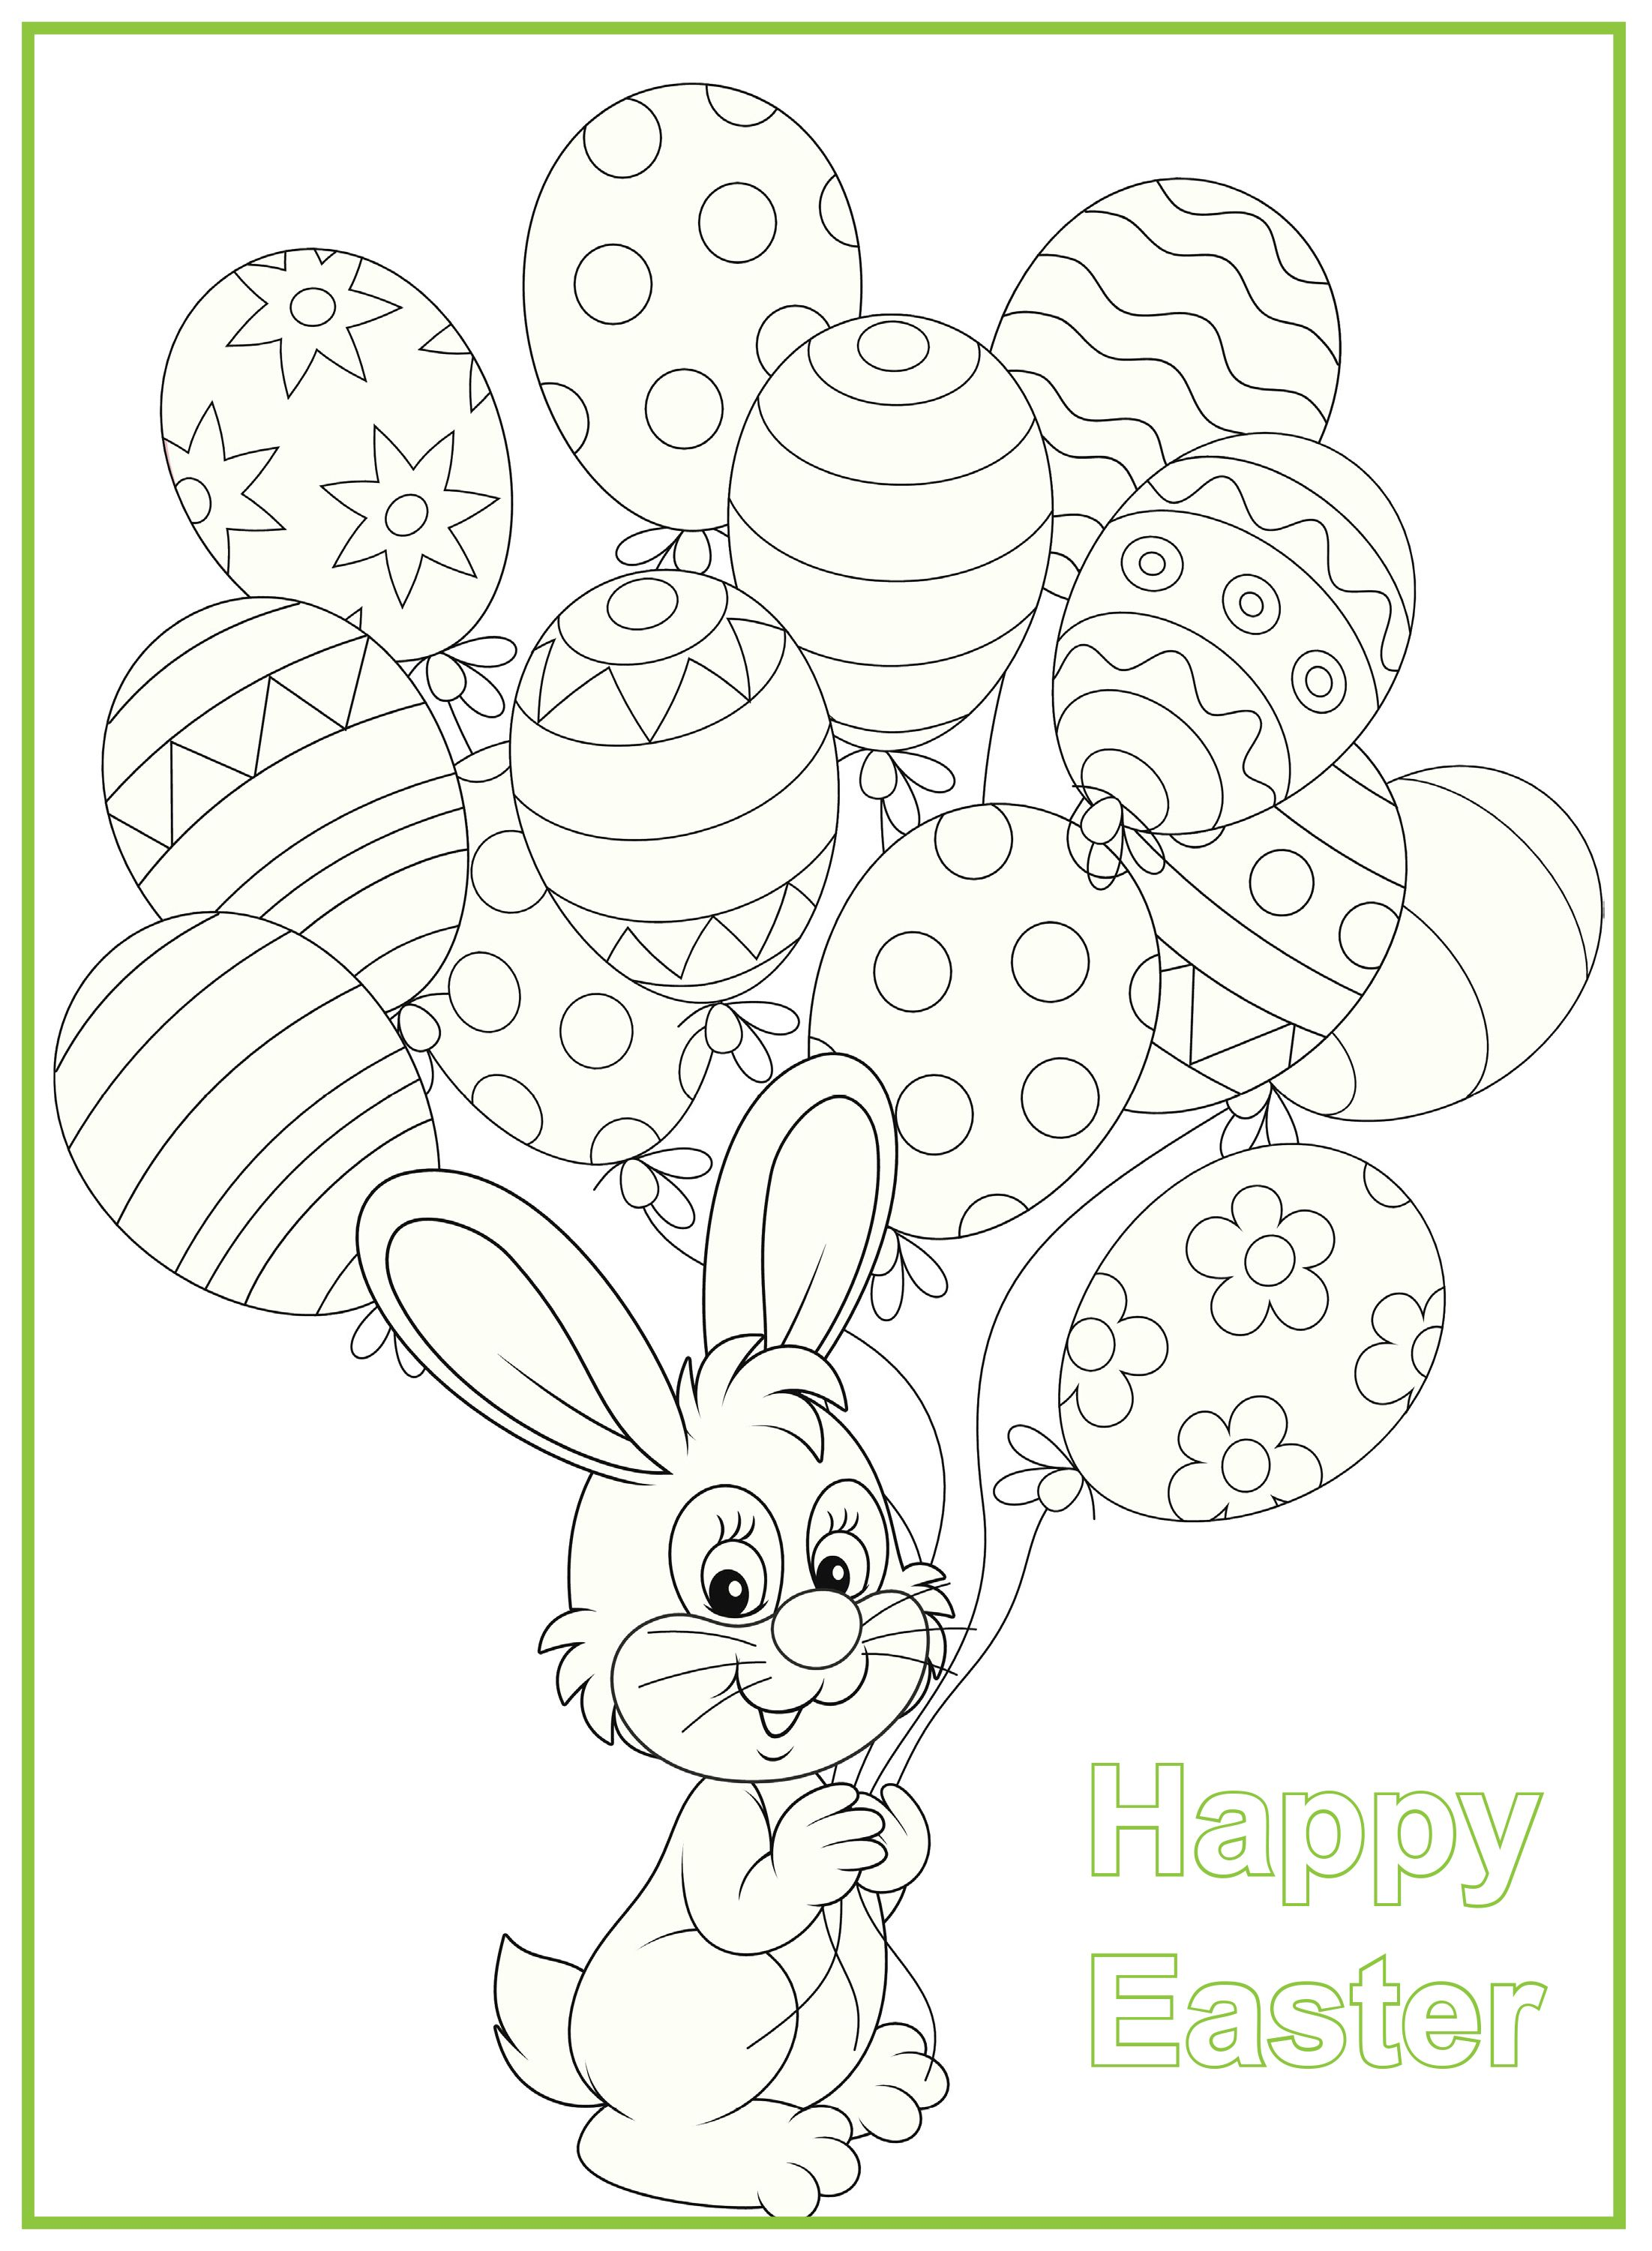 Print This Cute Easter Bunny For The Kids To Colour In